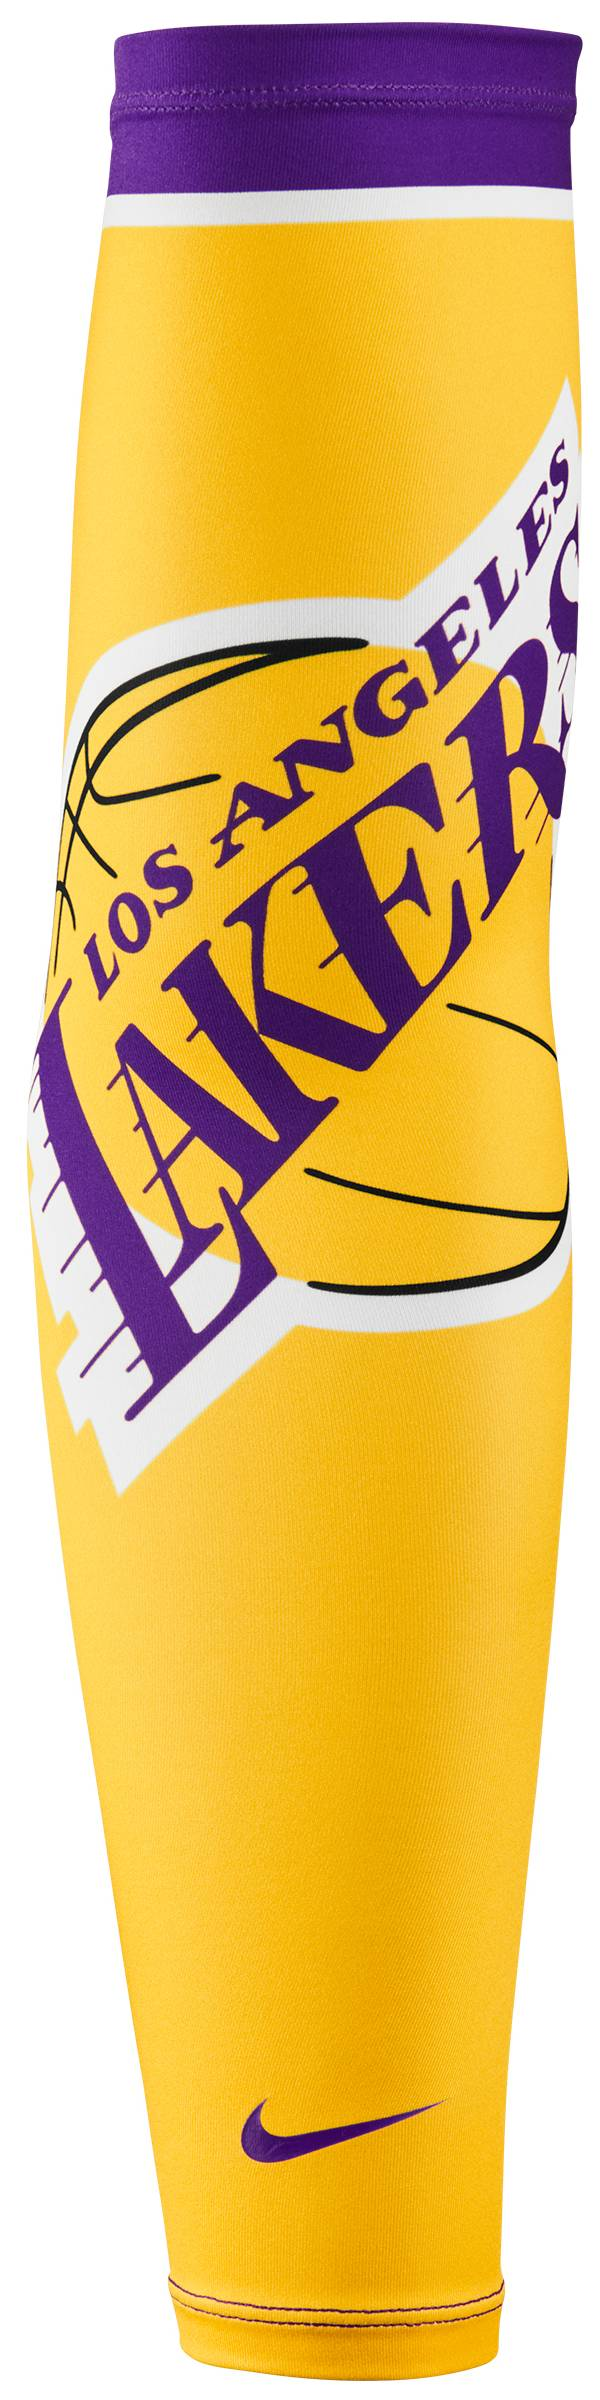 Nike Youth Los Angeles Lakers Shooter Arm Sleeve product image